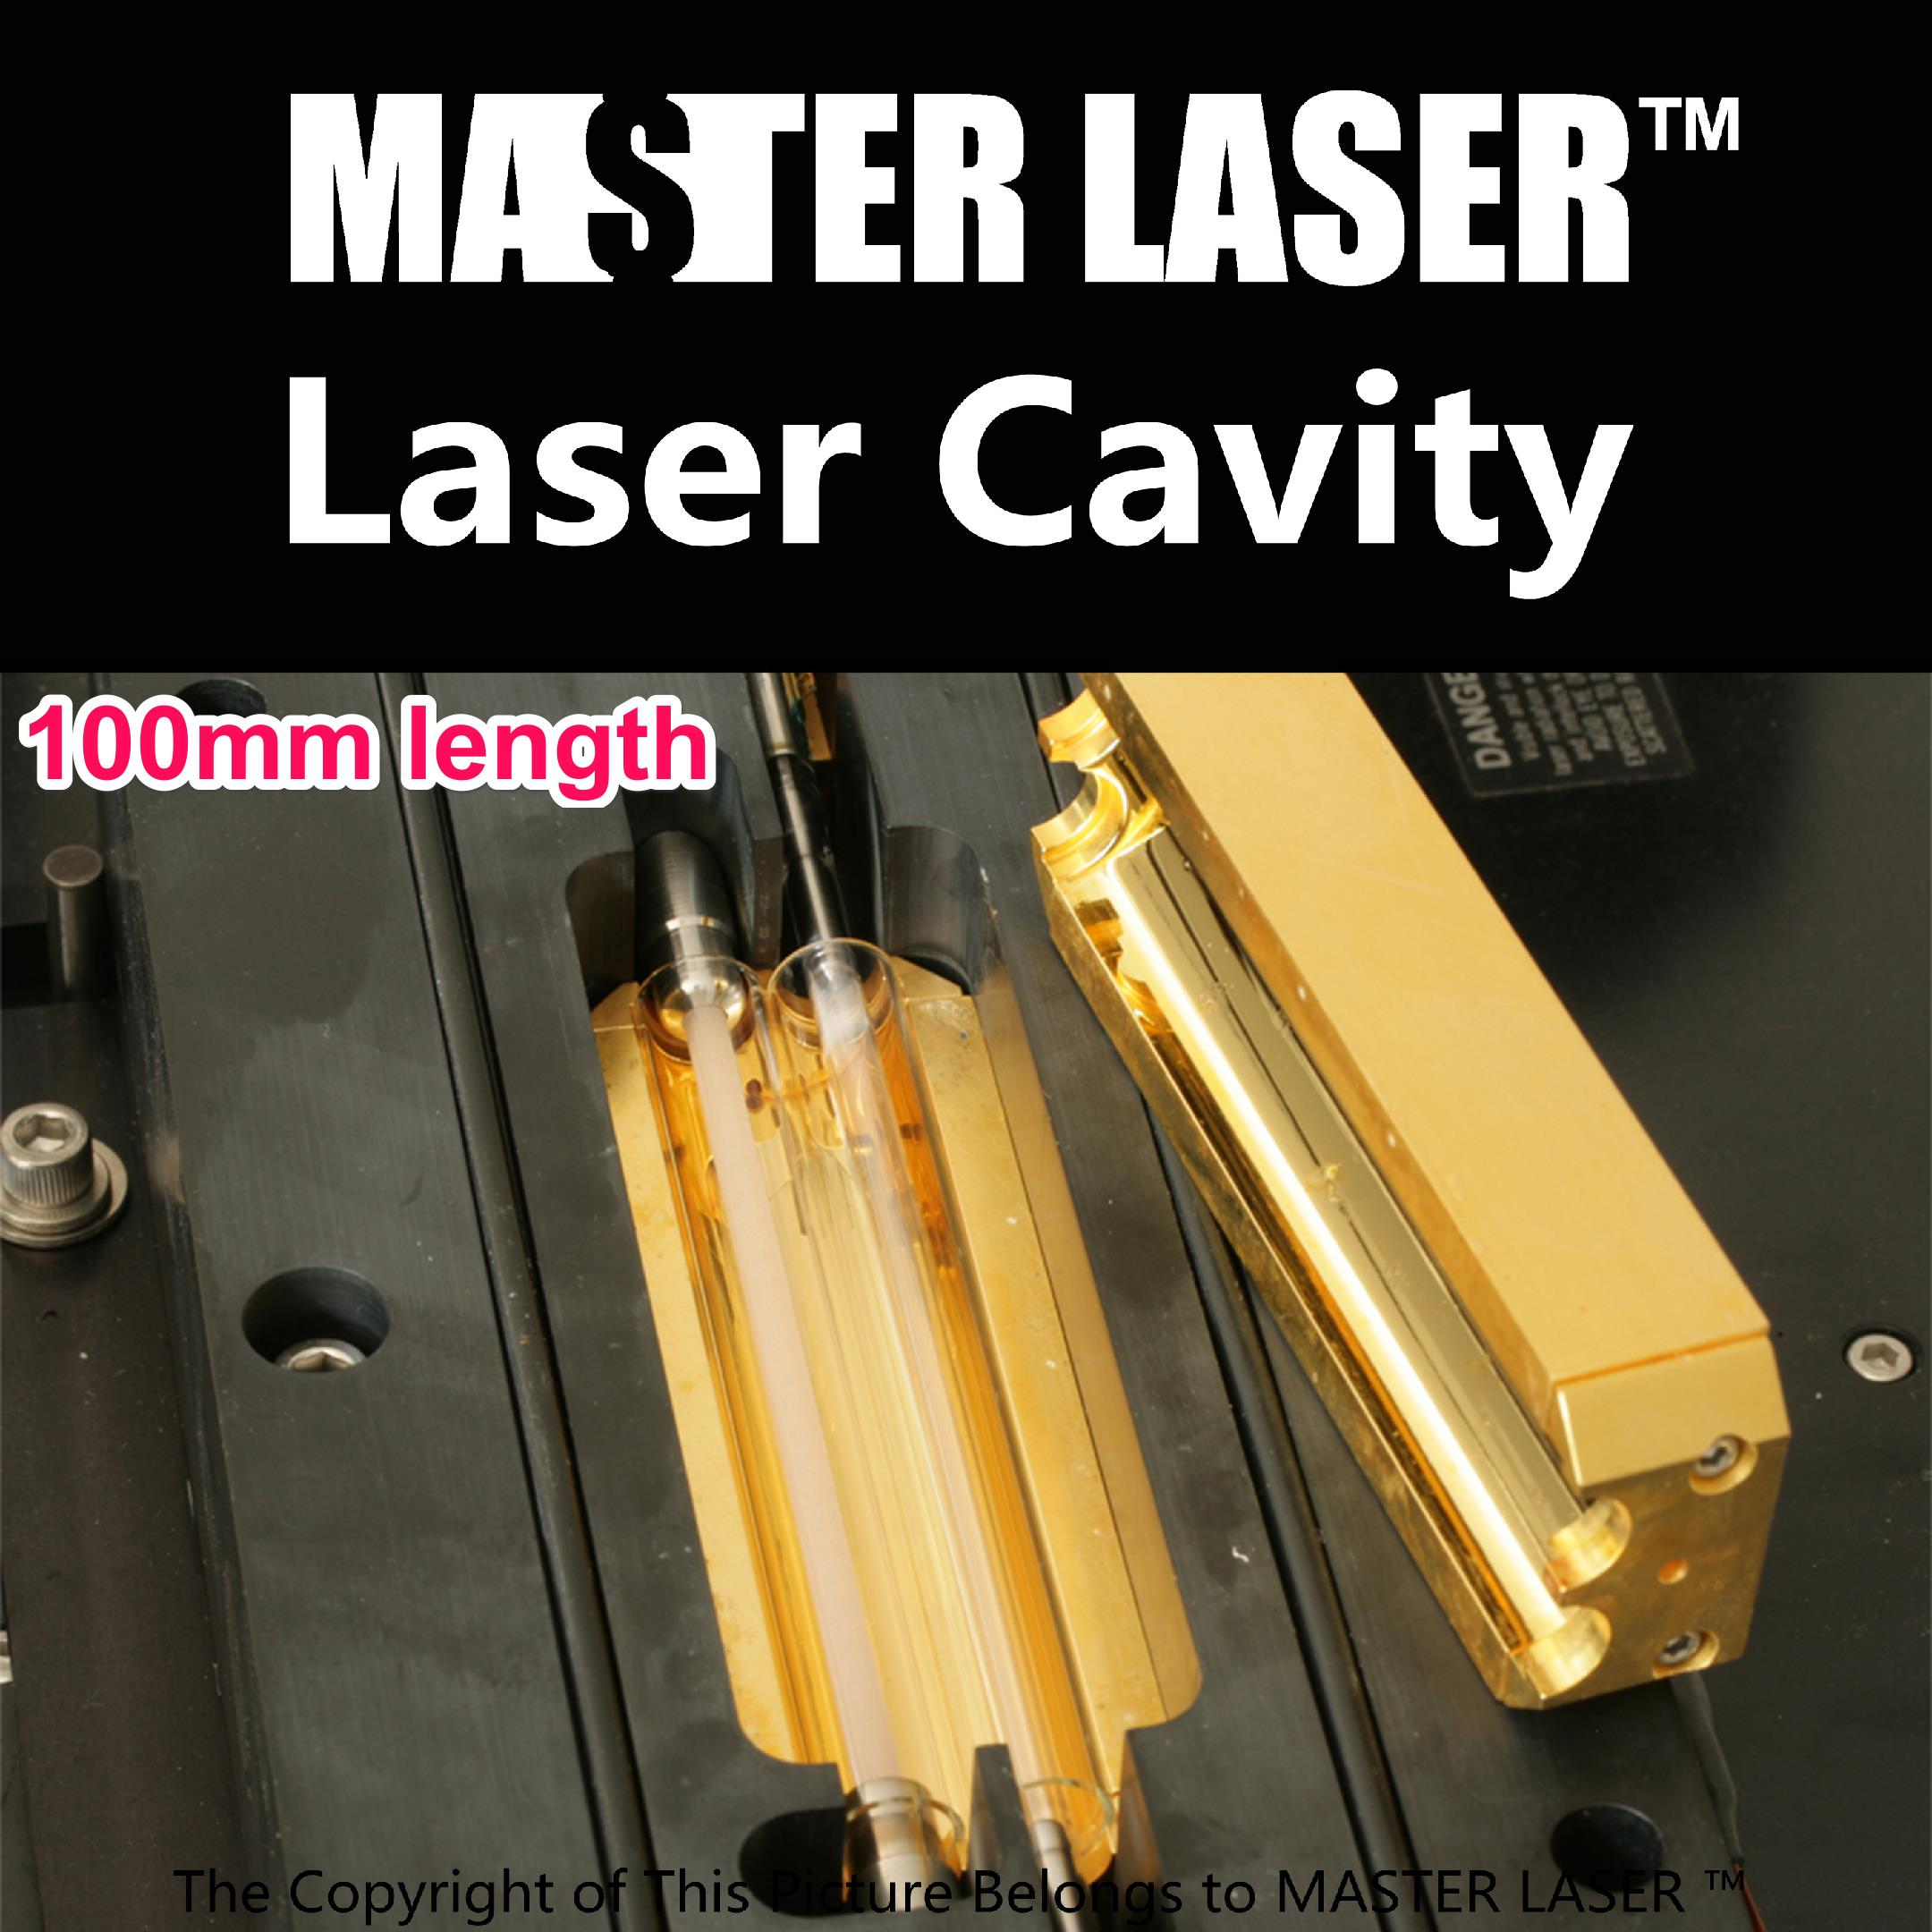 Replace of YAG Laser Tag Equipment Laser Welding Machine Yag Marking Machine Laser Cavity Golden Chamber Body Length 100mm high quality southern laser cast line instrument marking device 4lines ml313 the laser level